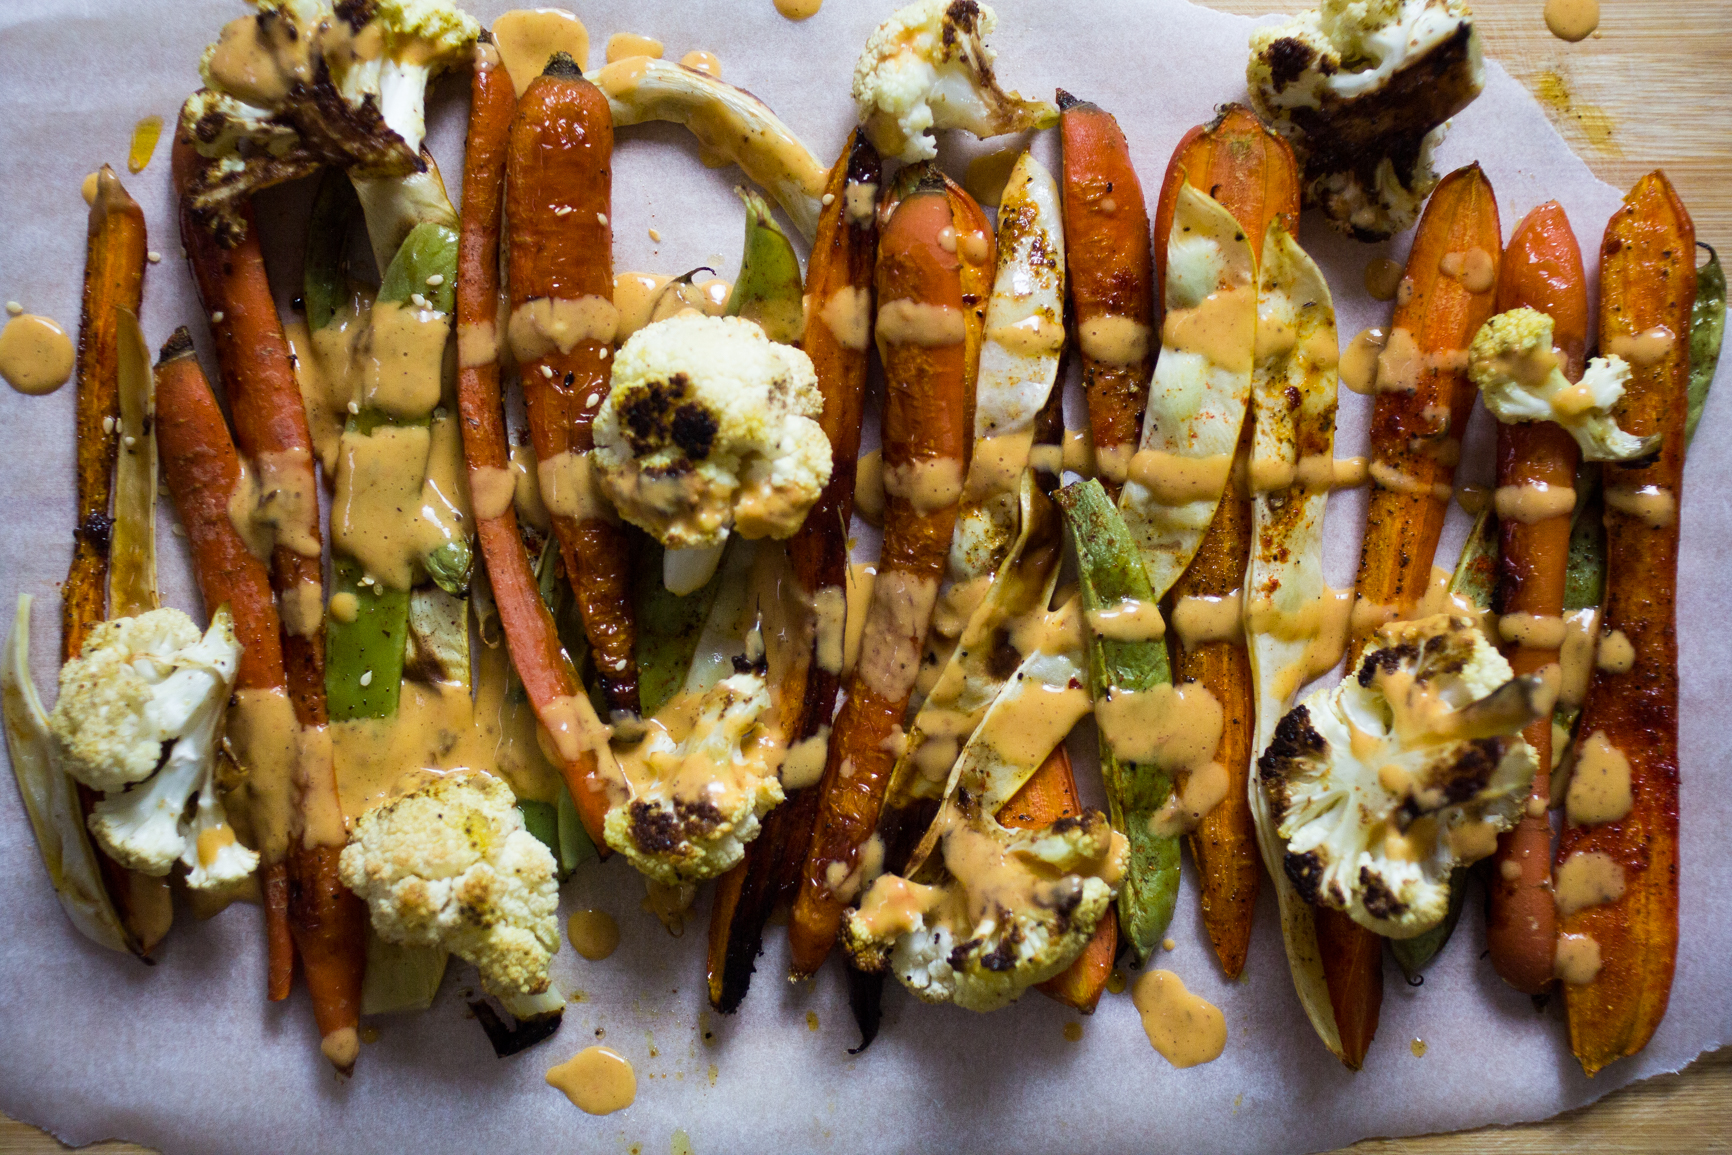 roasted veggies with aromatic sauce